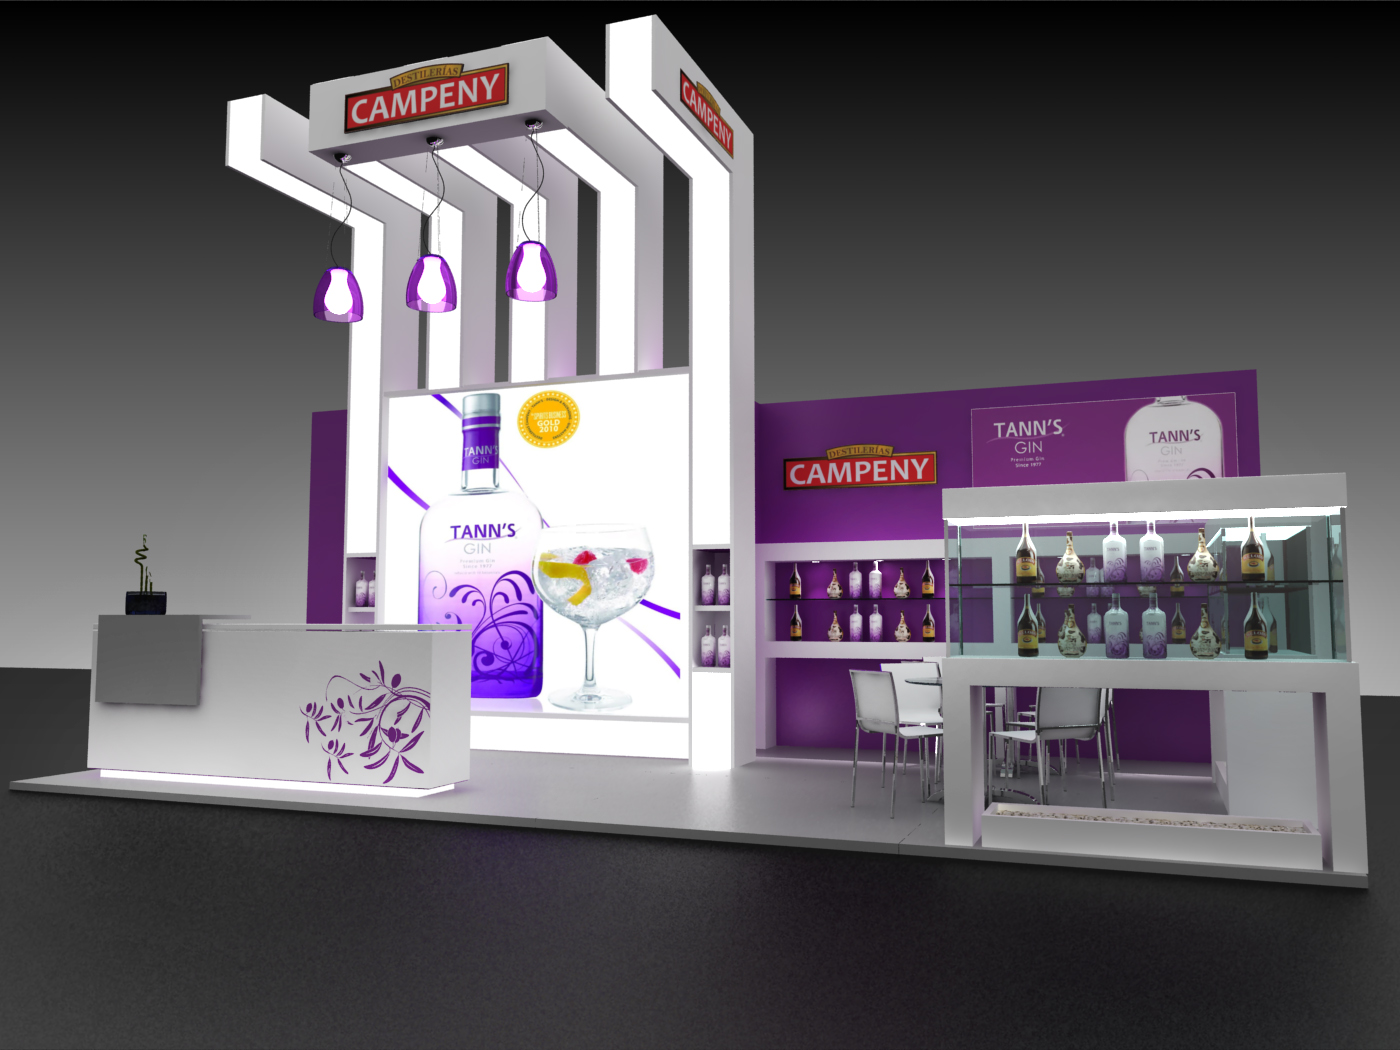 Exhibition Booth Design Johor : Exhibit design small by julieta iele at coroflot